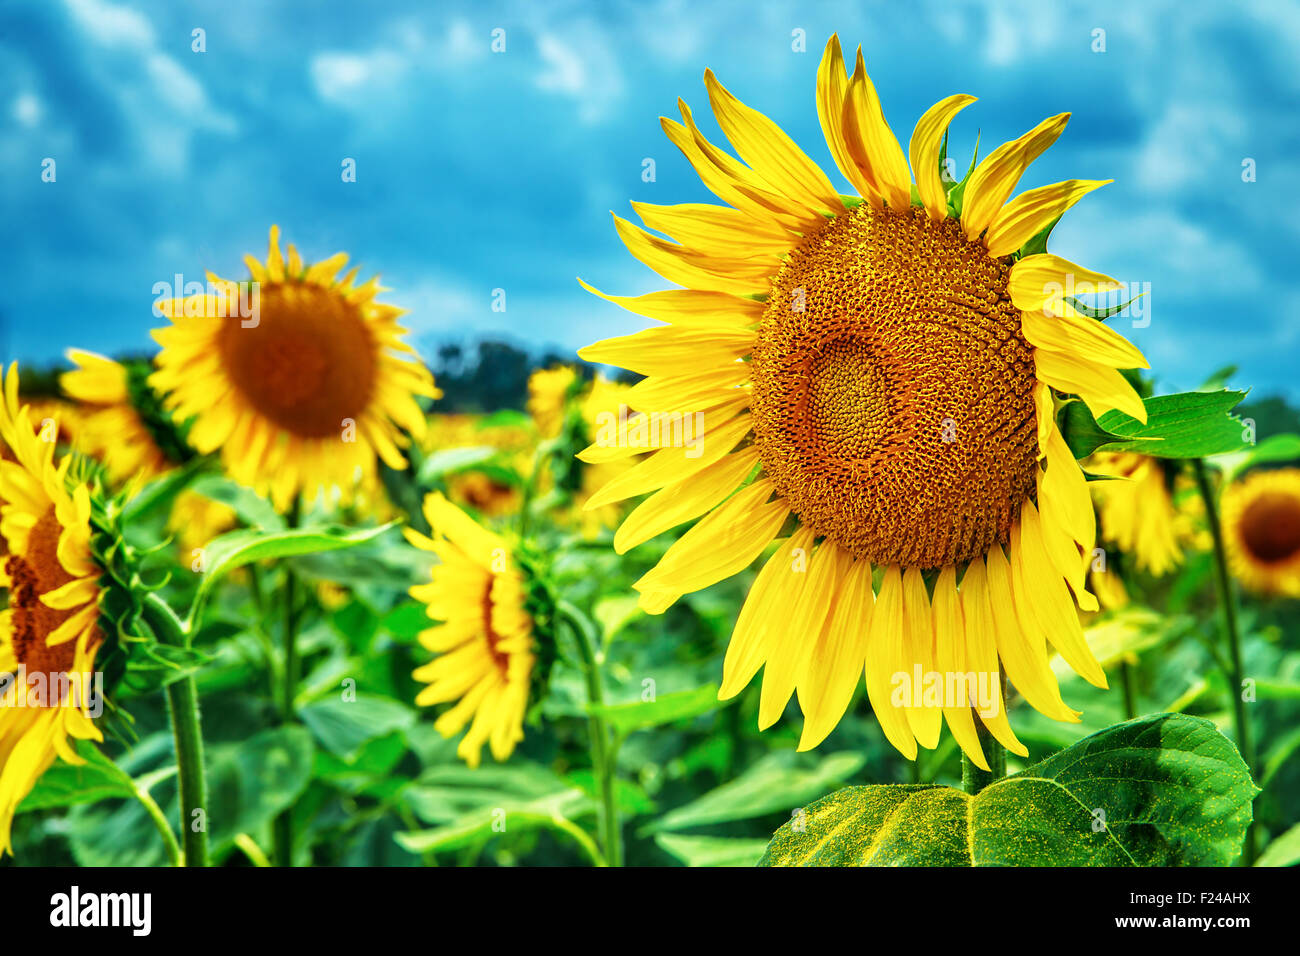 Beautiful Sunflowers Field Great Yellow Flowers Over Blue Sky Background Autumn Harvest Season Beauty Of Nature Tuscany